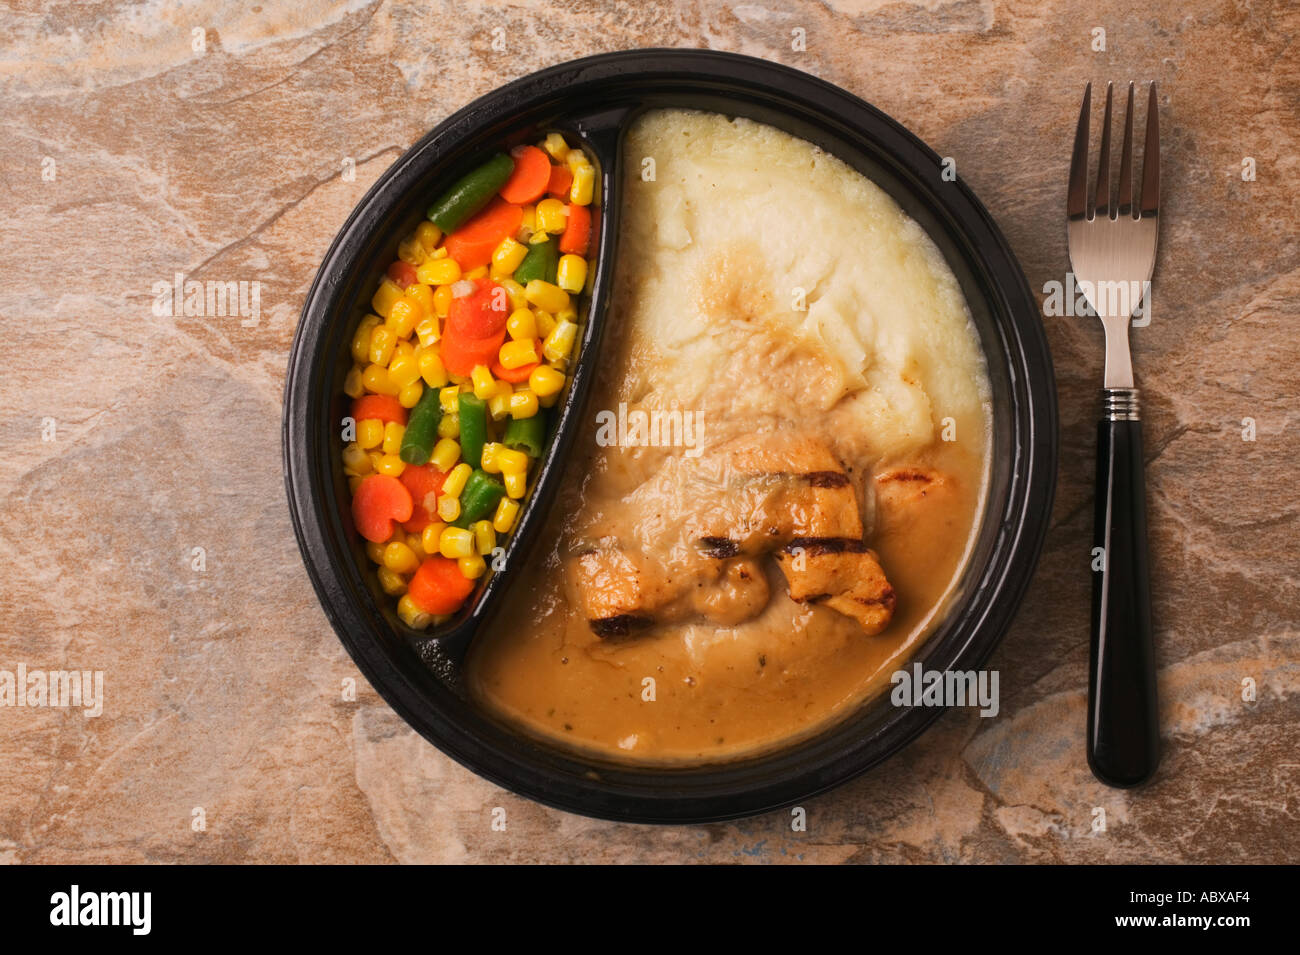 A round TV dinner - Stock Image